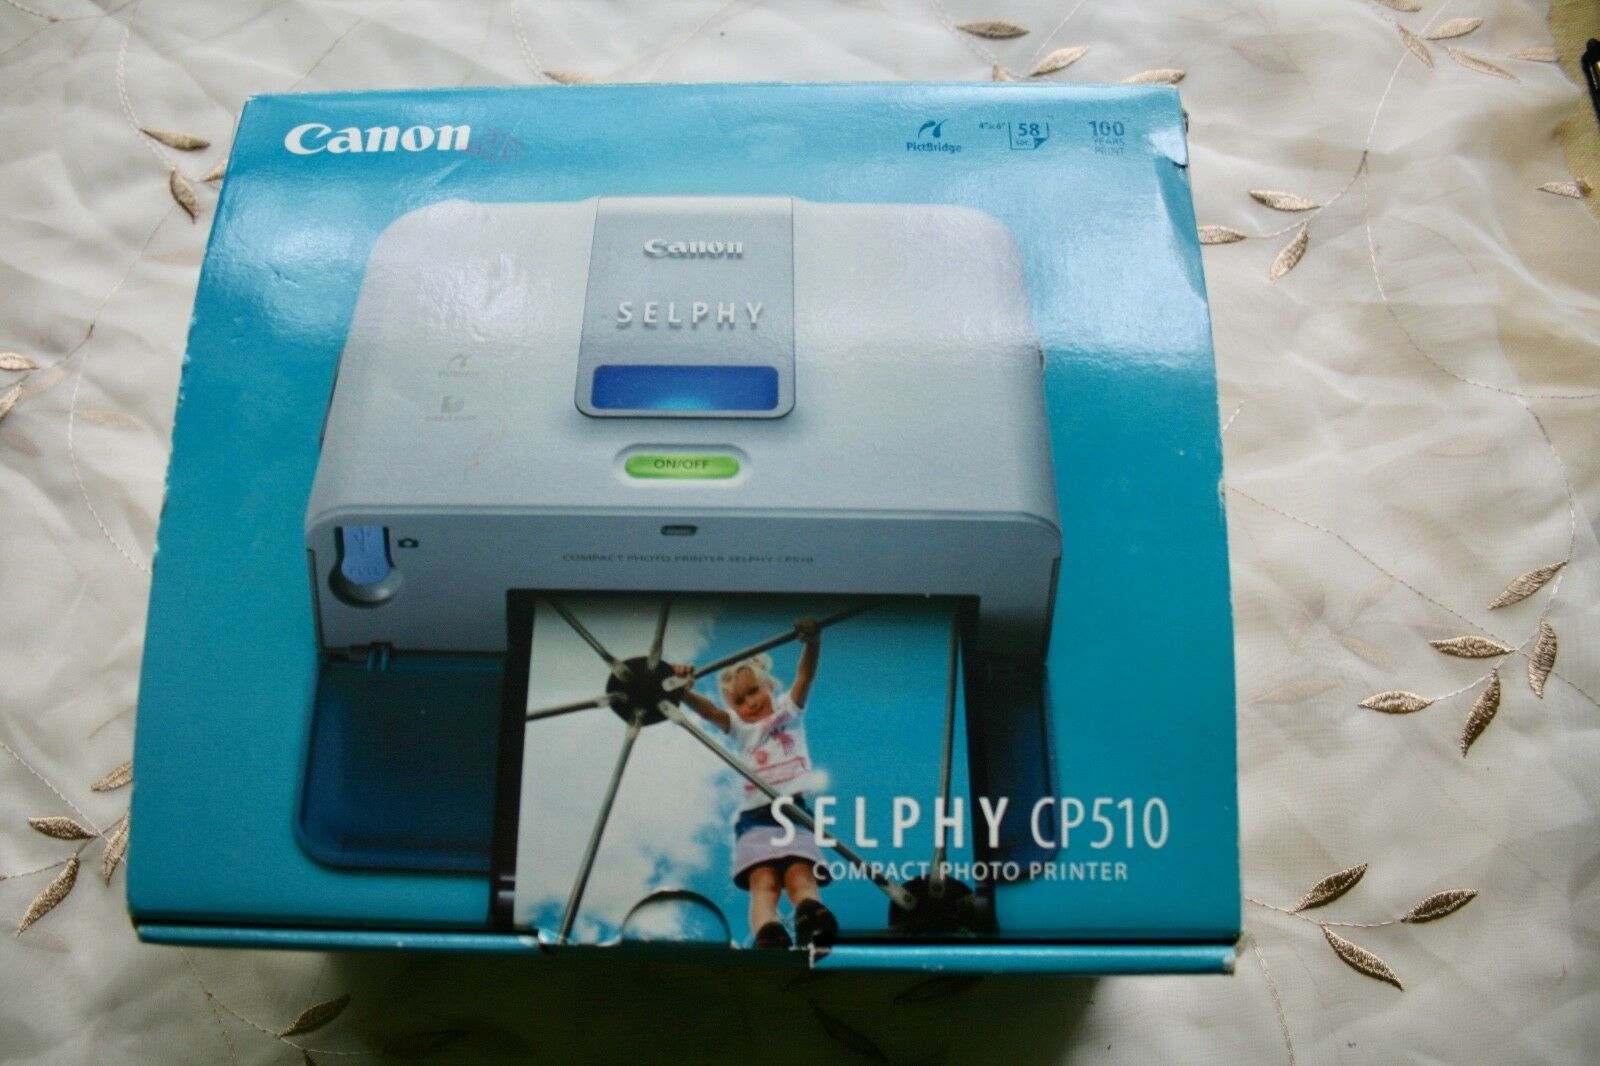 CANON CP150 TREIBER WINDOWS 7